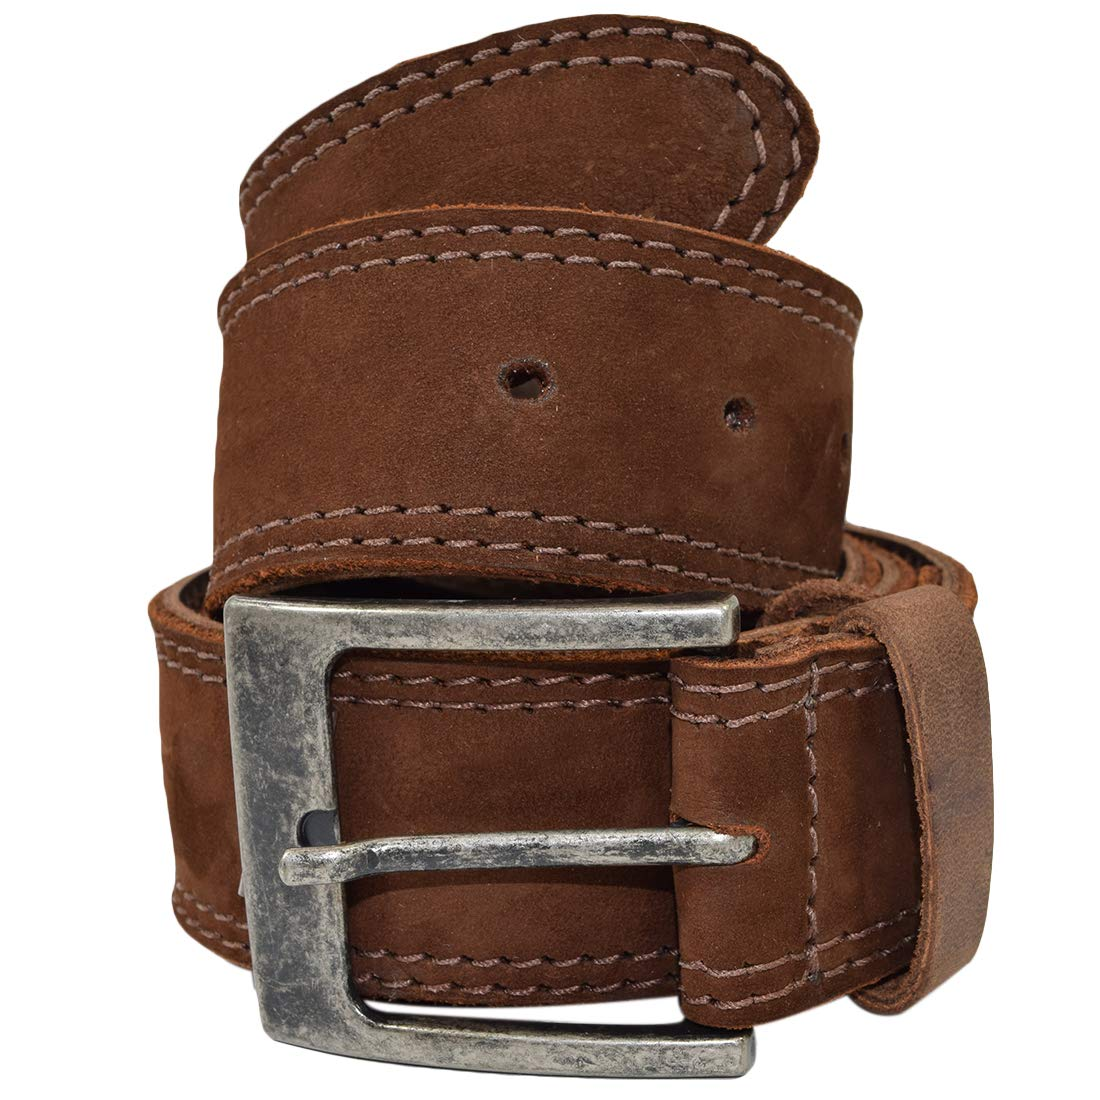 Men's Two Row Stitch Leather Belt Handmade by Hide & Drink :: Swayze Suede (Size 44)